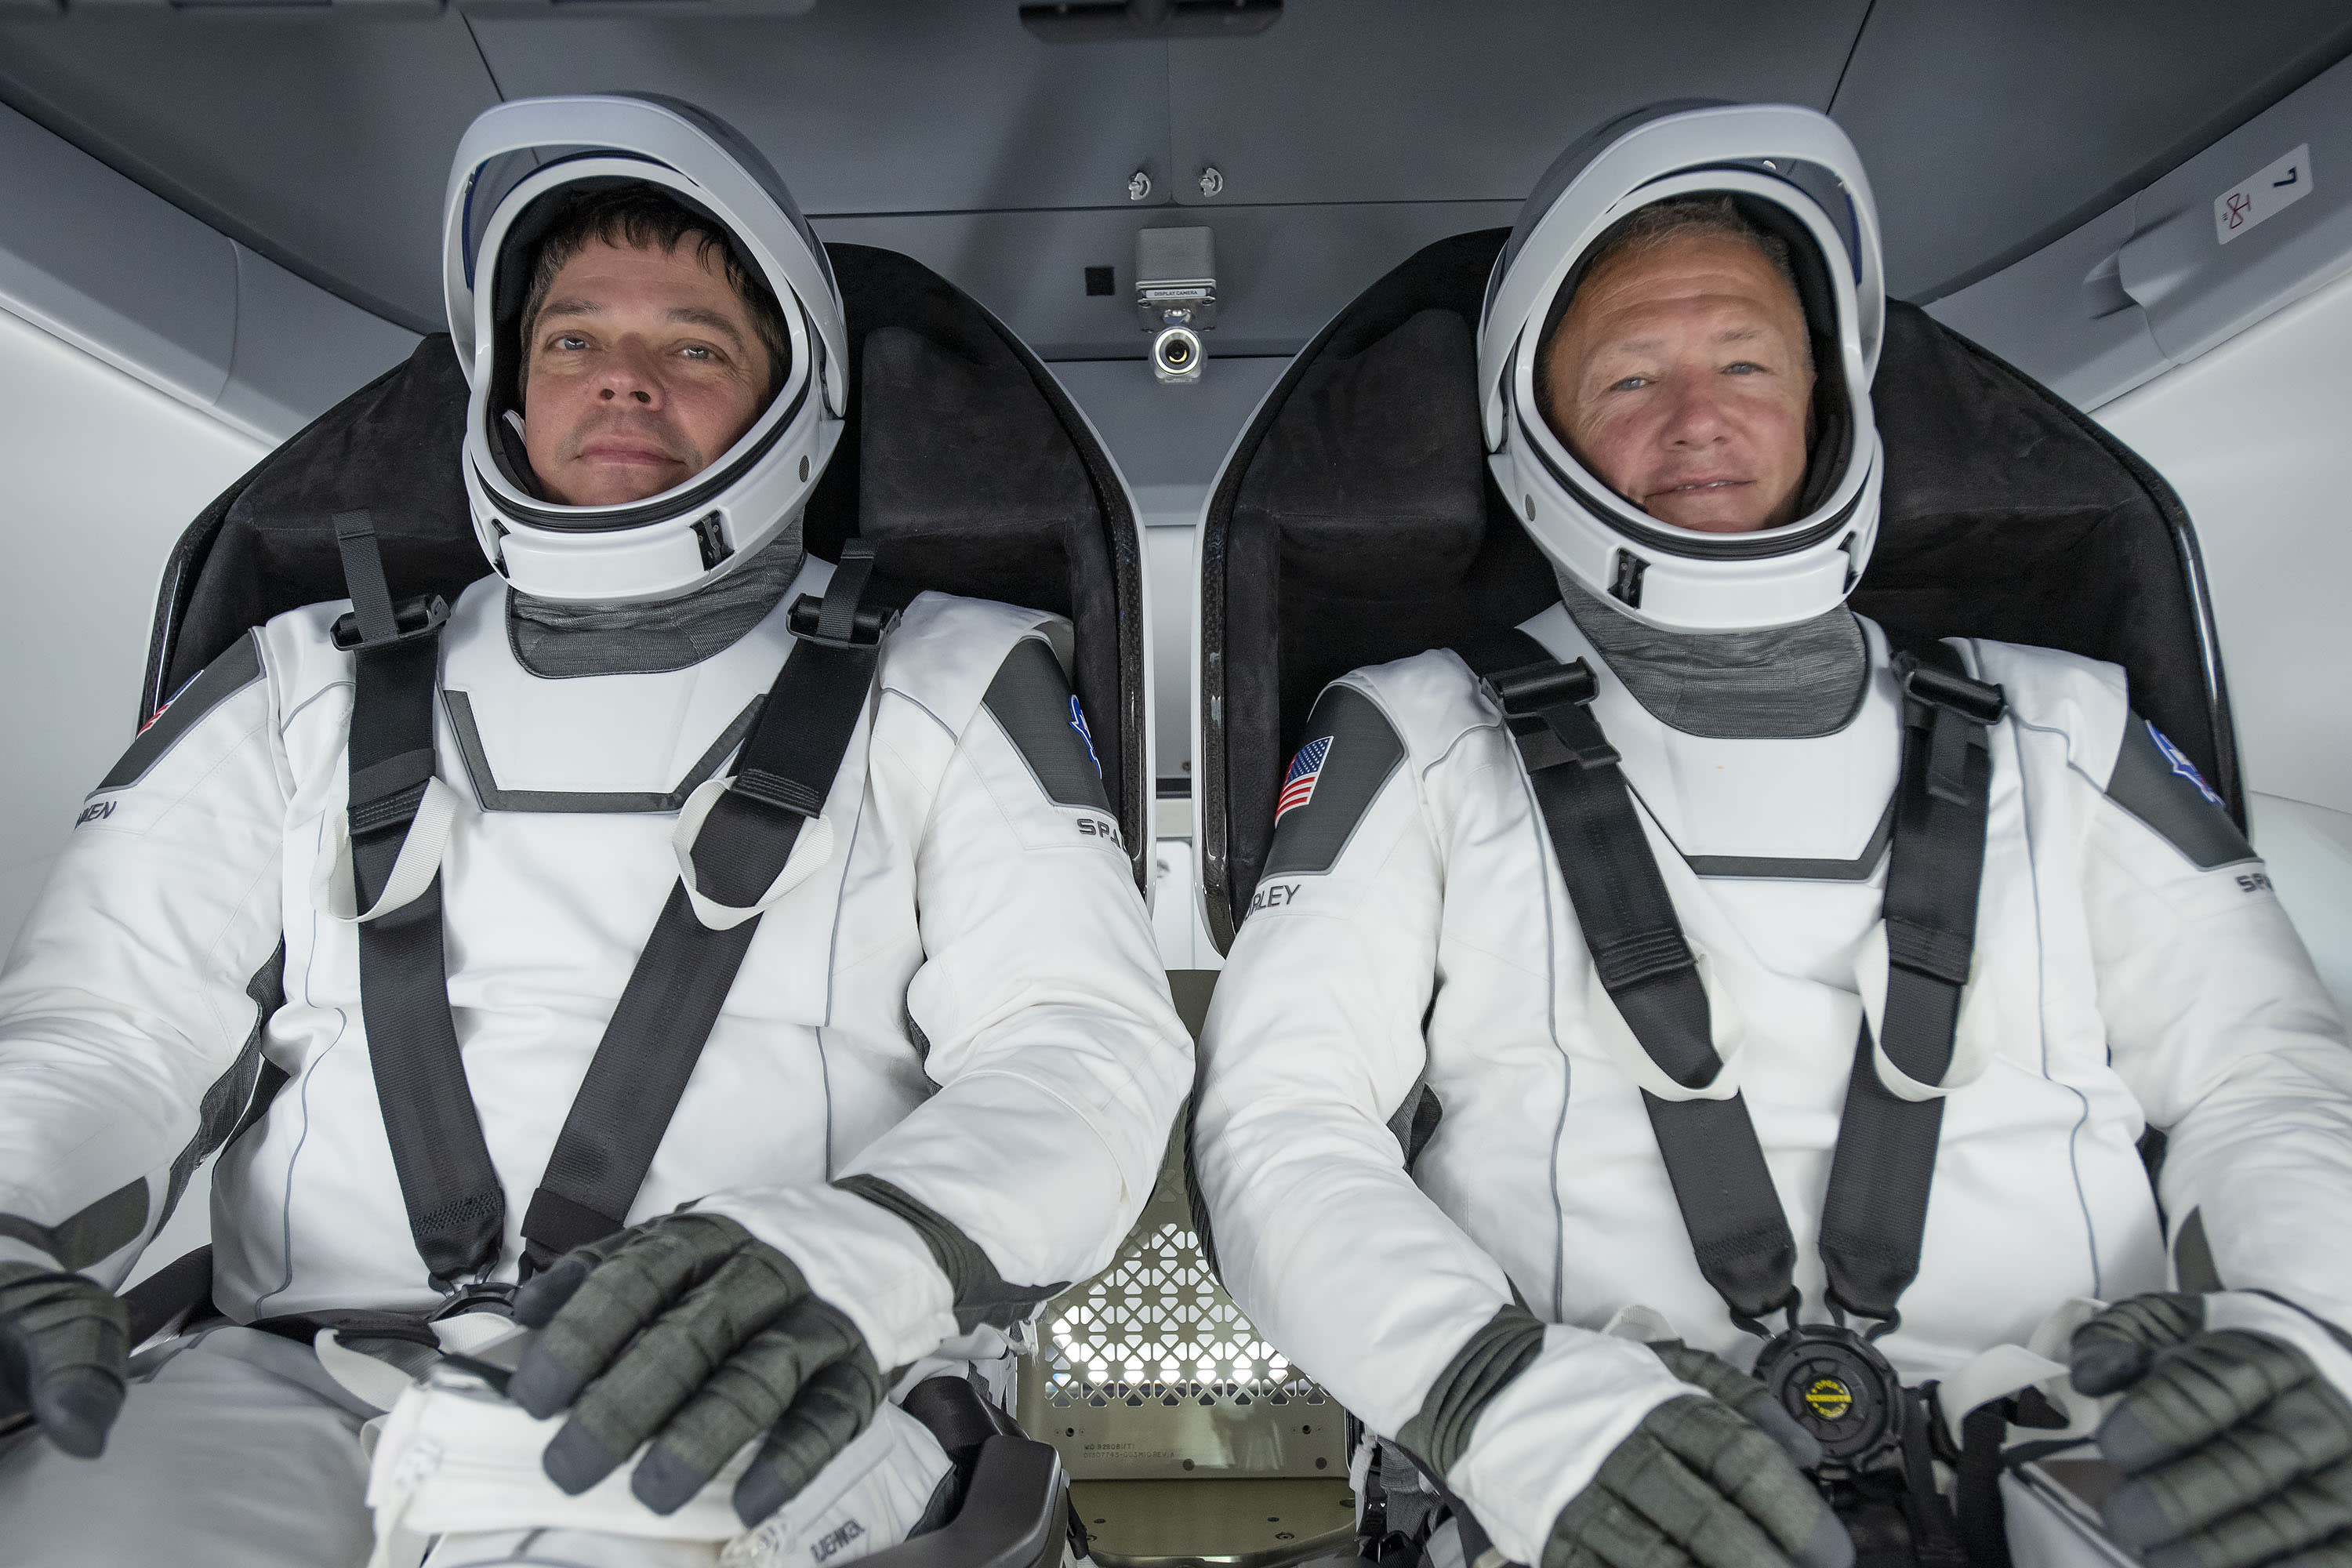 Watch live as SpaceX brings NASA astronauts back from the Space Station aboard Crew Dragon – Yahoo Finance Australia